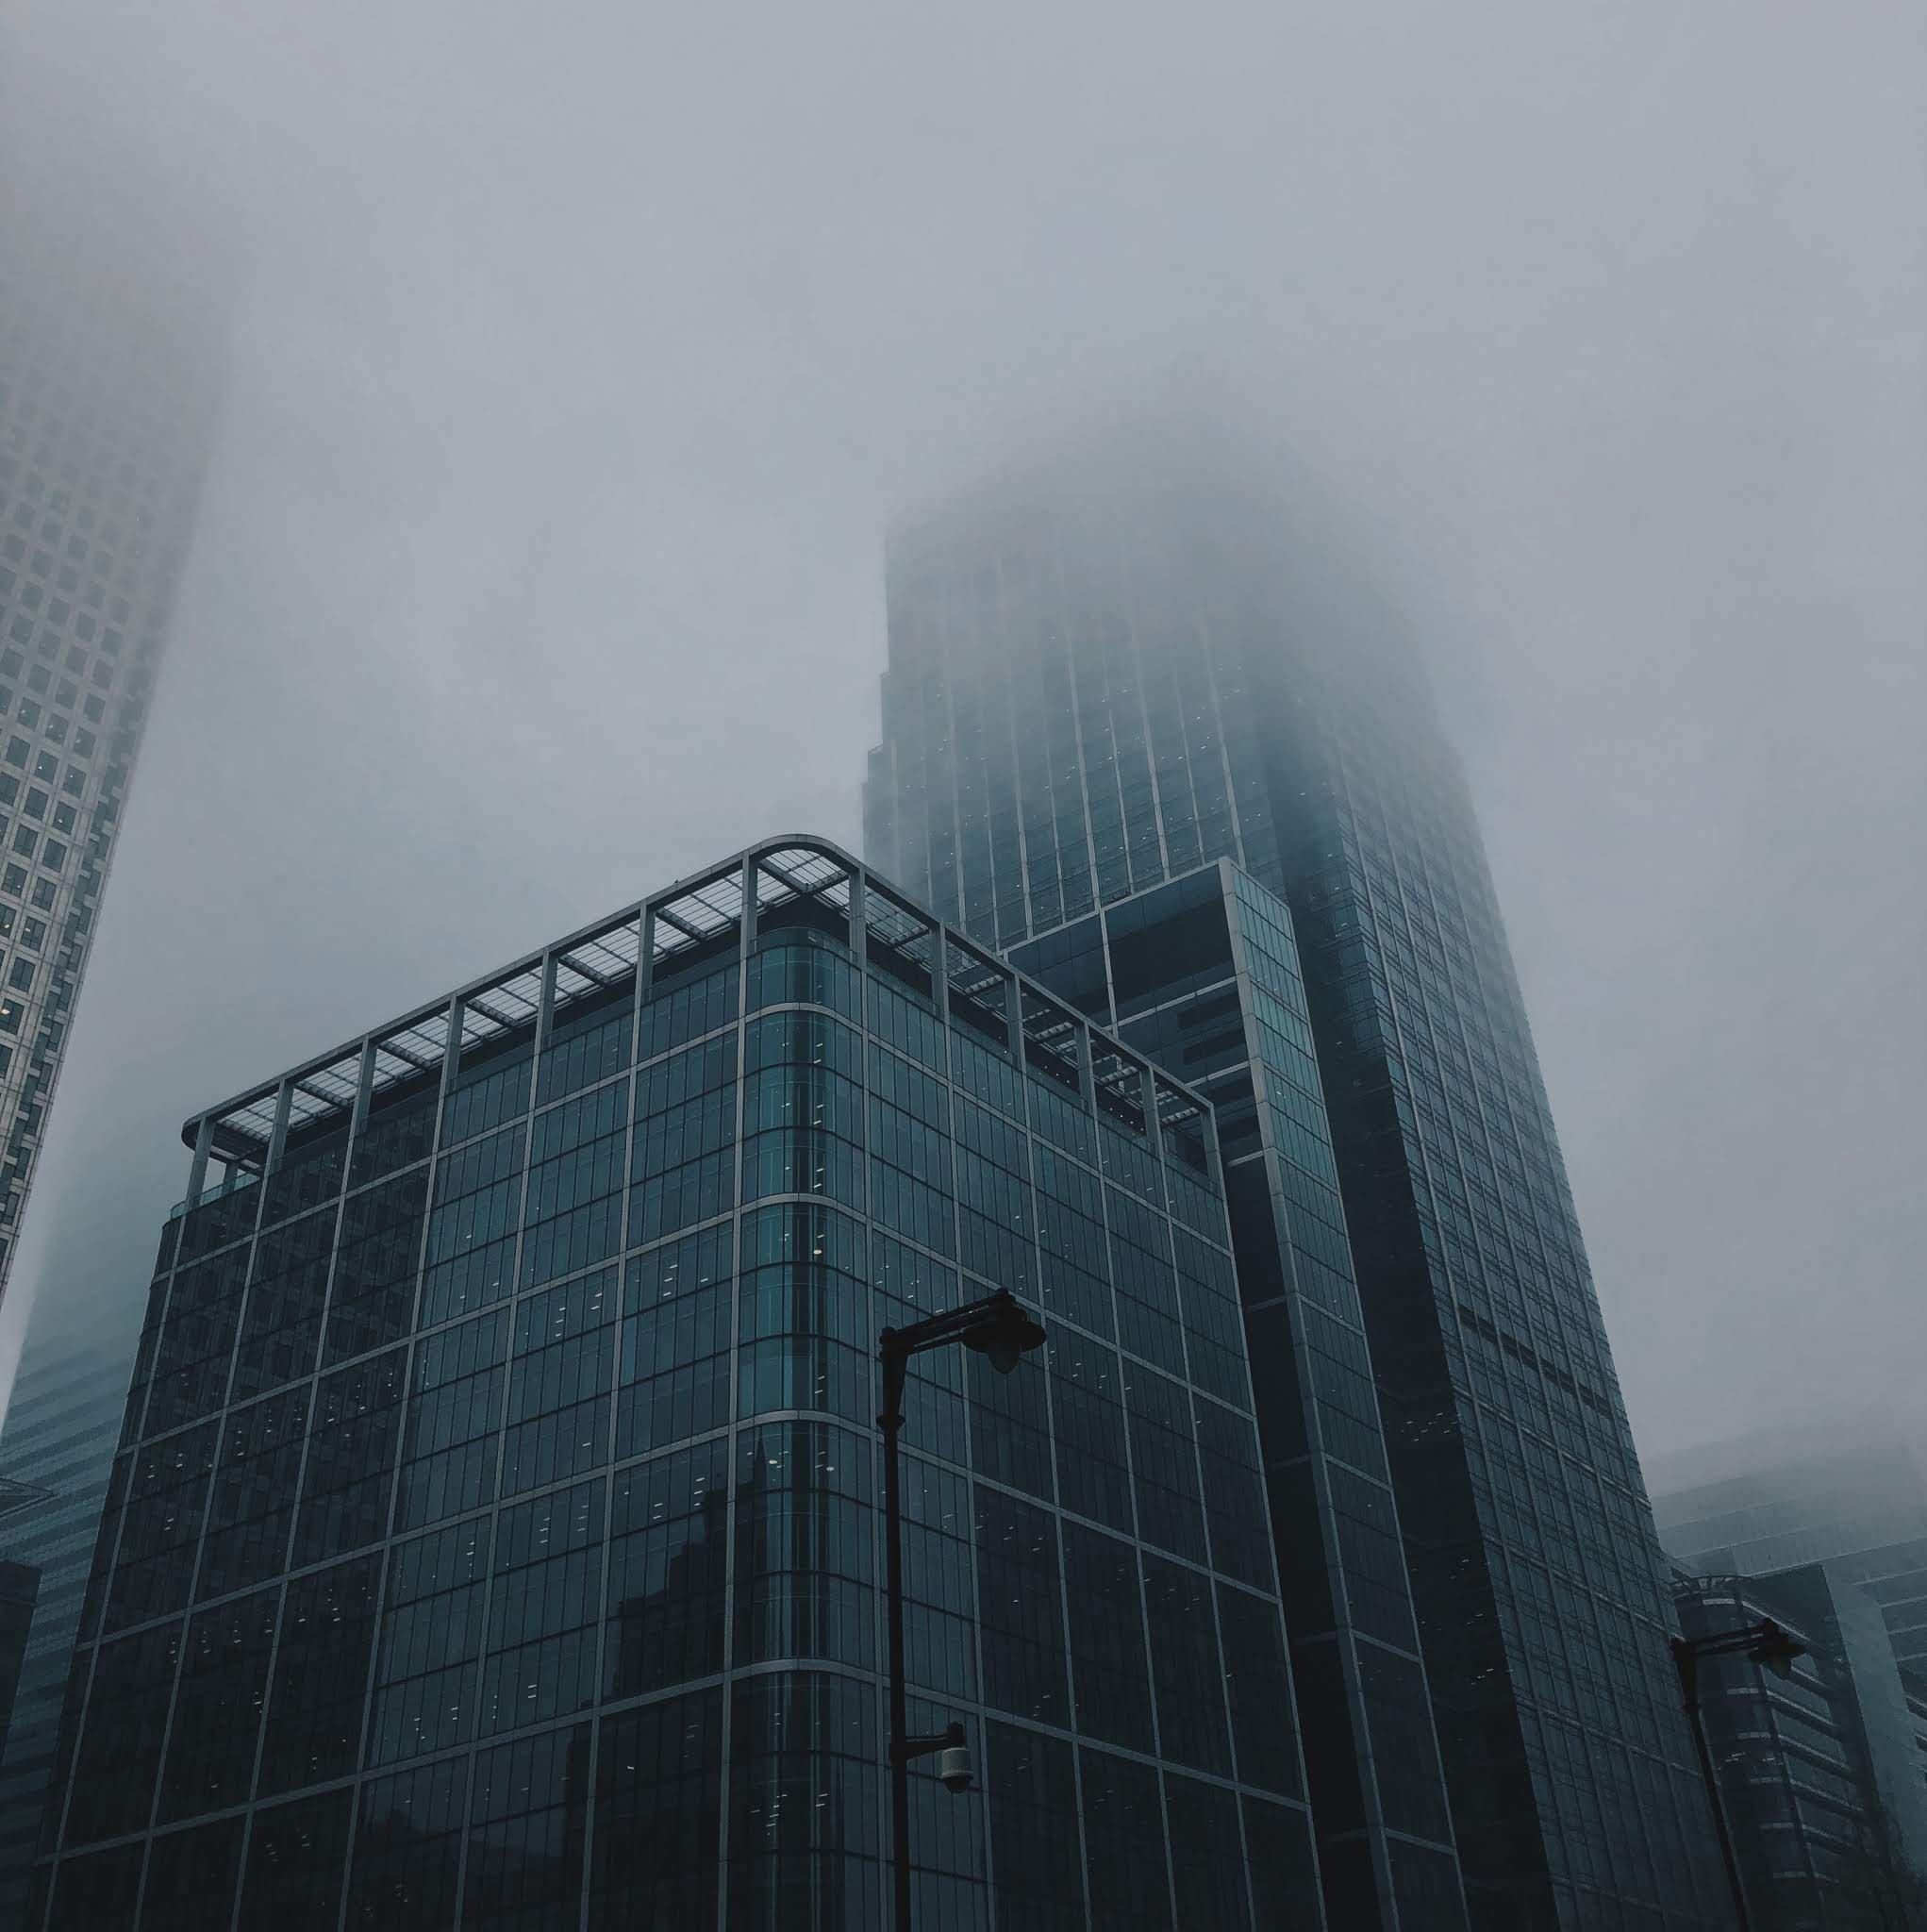 Shot in Canary Wharf, example of a Low Vantage Point